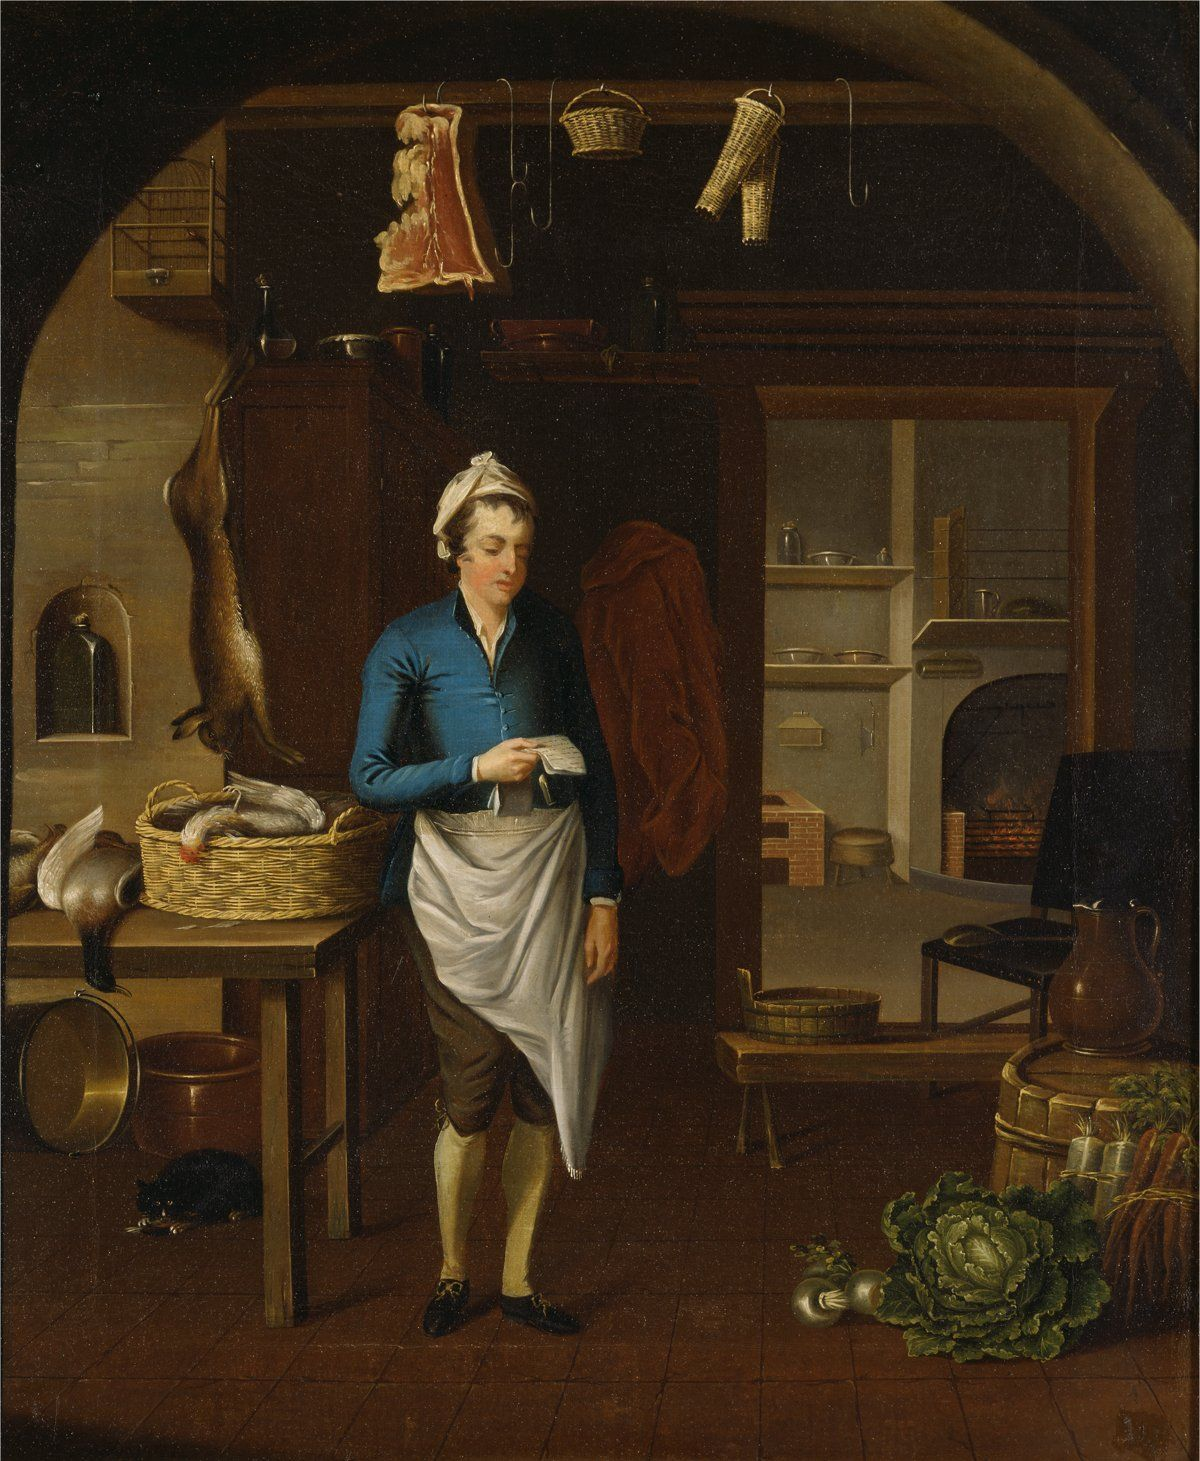 18th century kitchen worker kitchen scene by john atkinson for 18th century cuisine